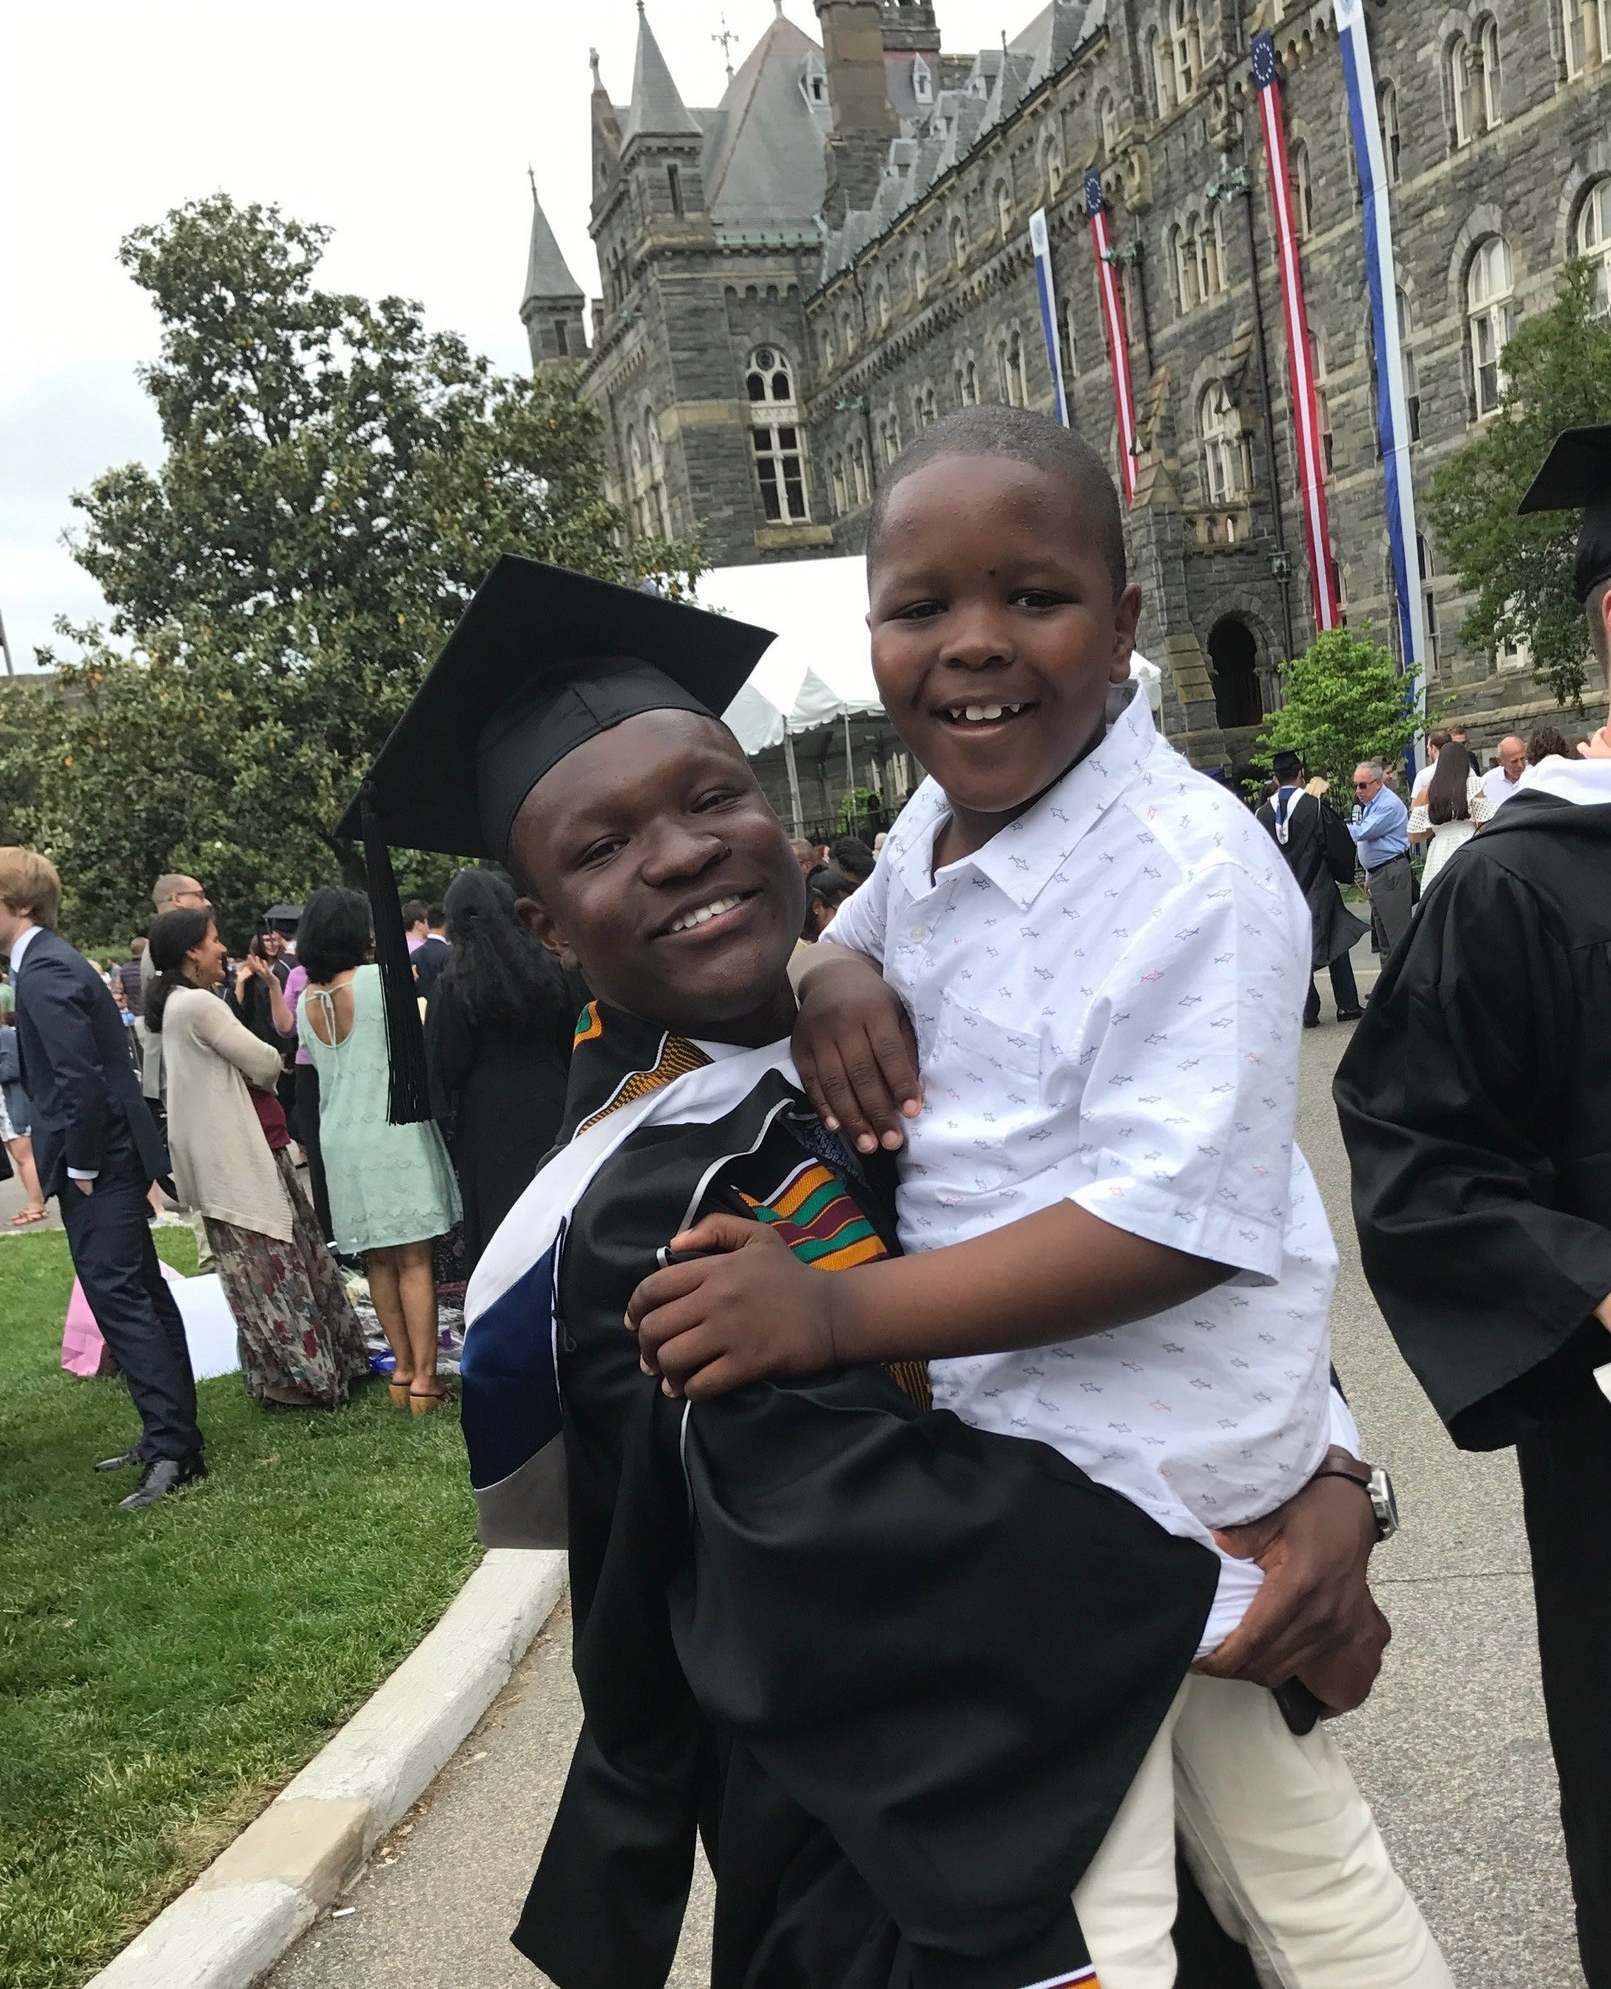 Abdurrahman and his little brother at his 2017 Georgetown University graduation!